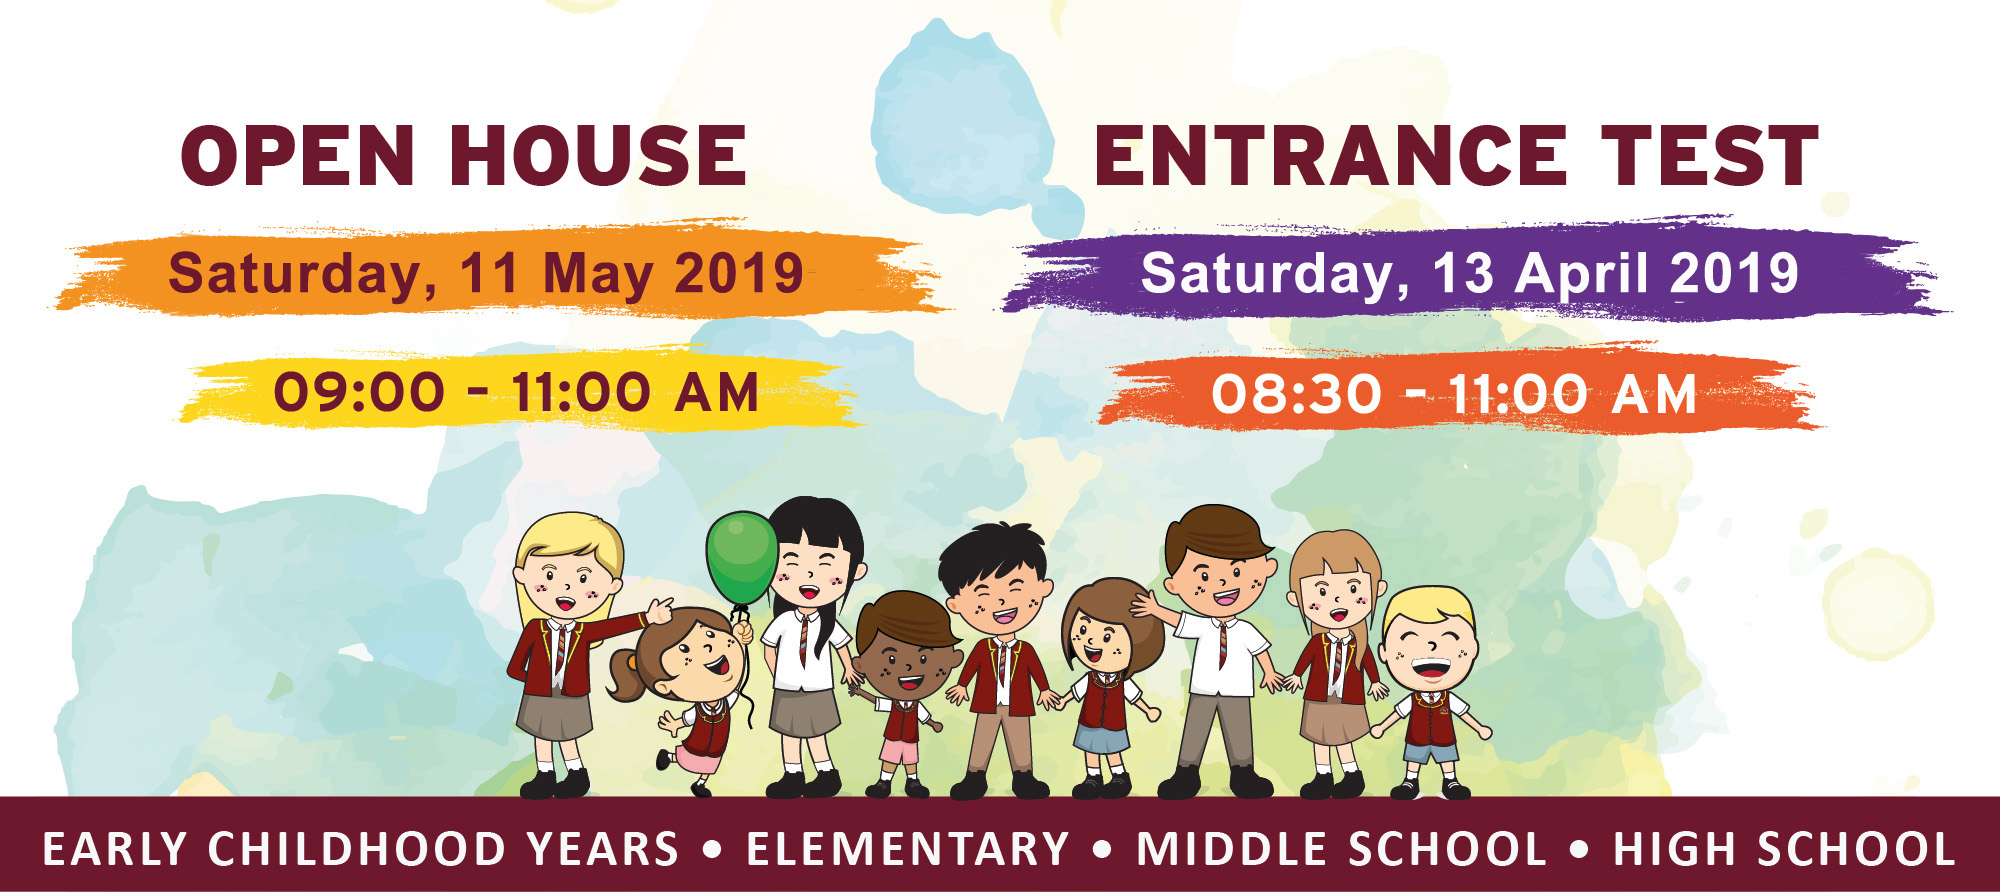 Open House 11 May and Entrance Test 13 April